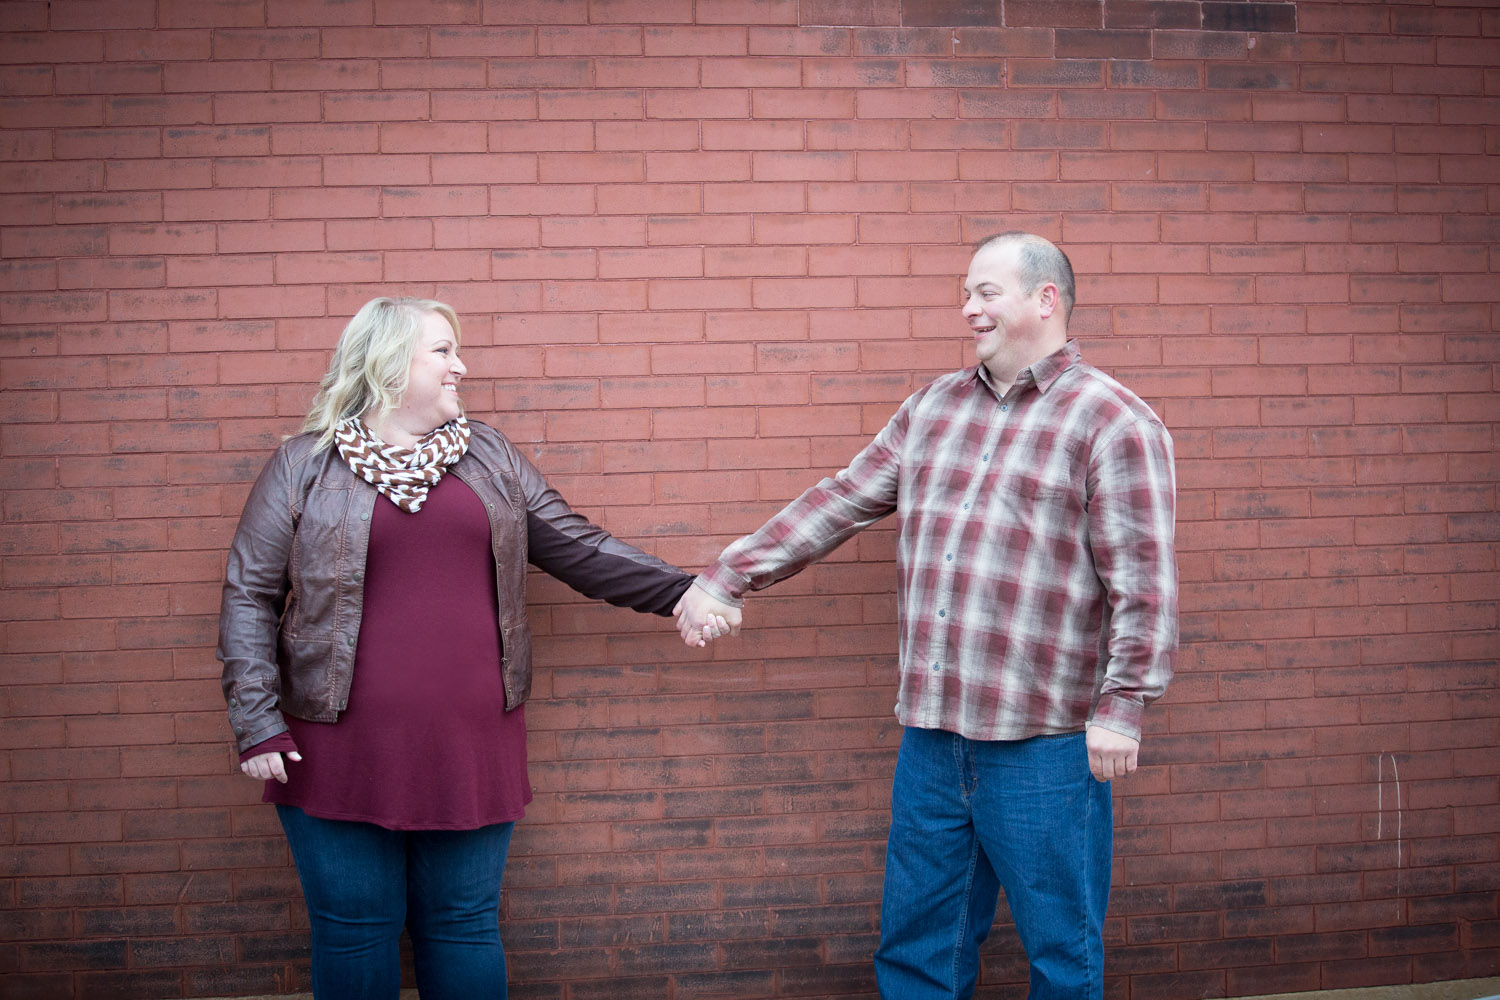 07-fall-engagement-session-urban-textures-stillwater-red-brick-wall-mahonen-photography.jpg